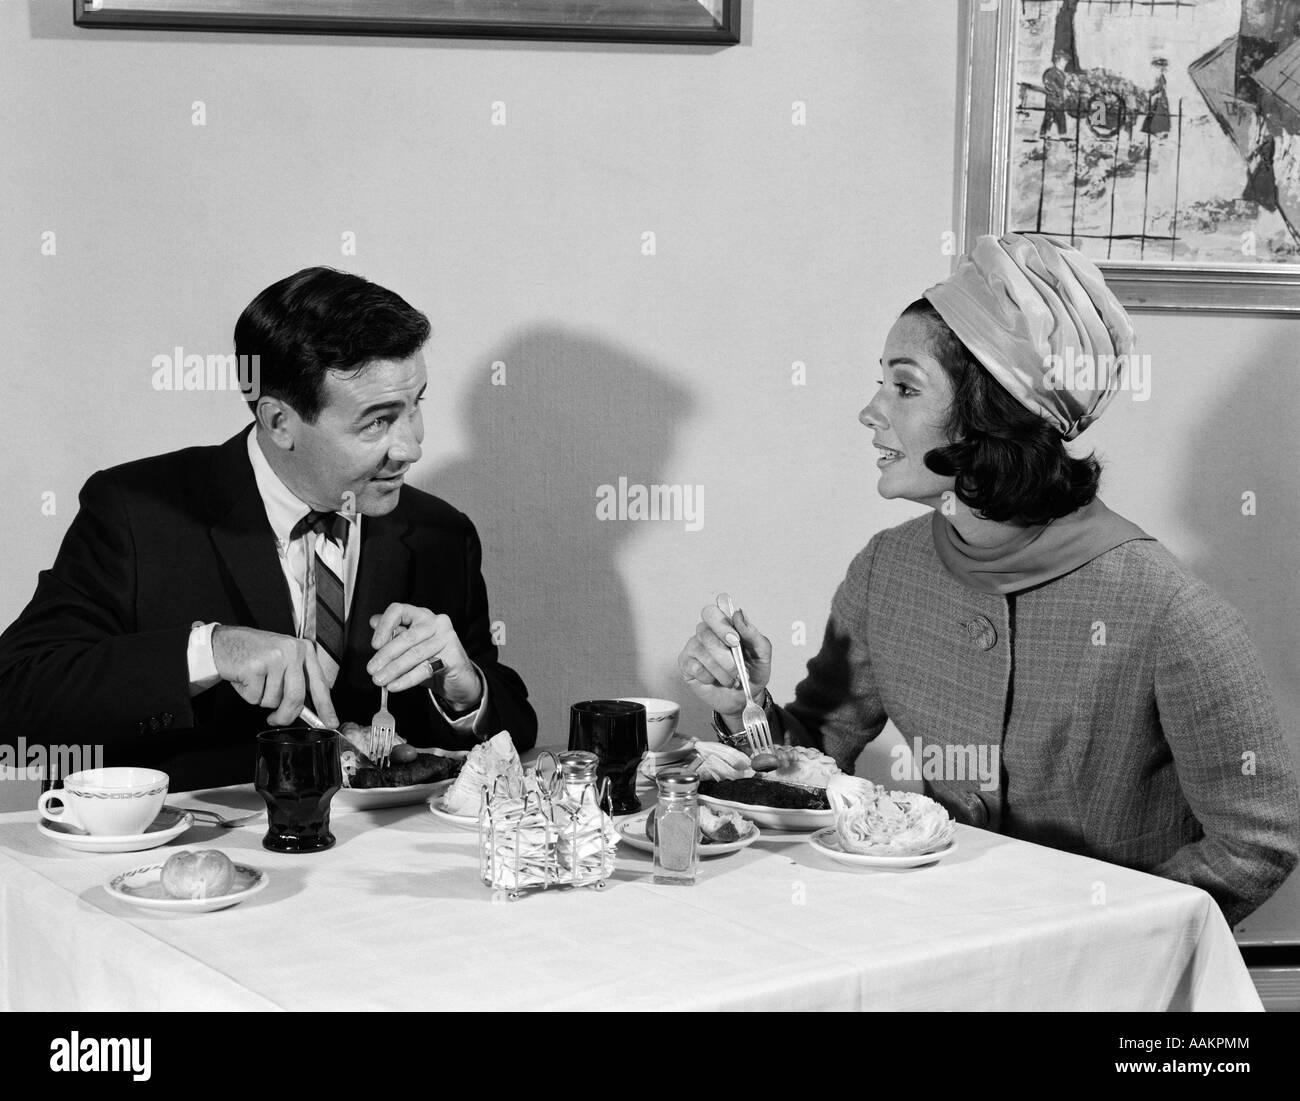 1960s COUPLE MAN WOMAN EATING MEAL IN RESTAURANT WOMAN WEARS TURBAN STYLE HAT - Stock Image